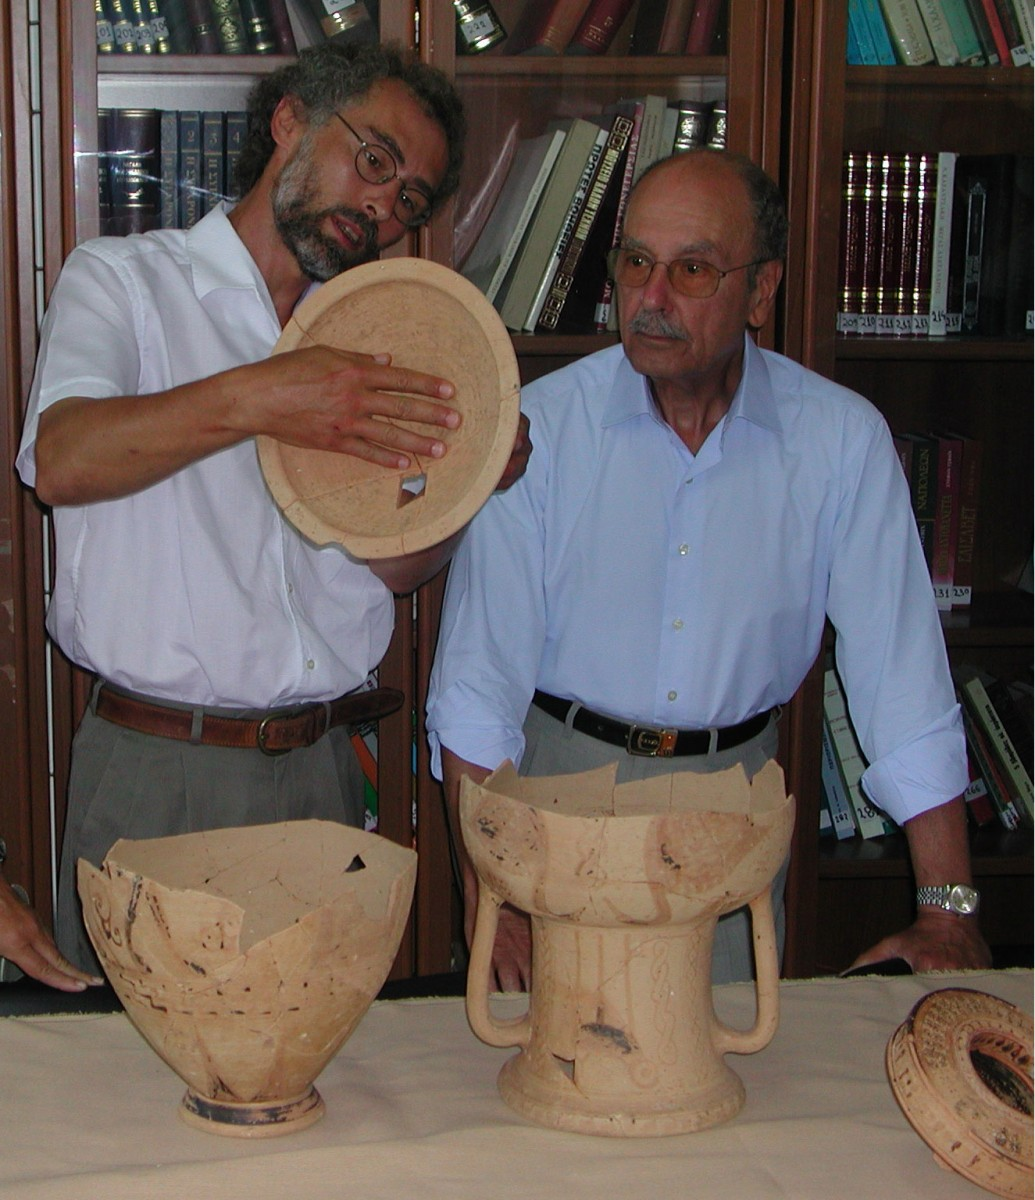 The 15th August 2003. President of the Republic Kostis Stefanopoulos visits the Chora of Kythnos. Alexandros Mazarakis Ainian gives him a guided tour of the antiquities (photo: Lina Lichnou).